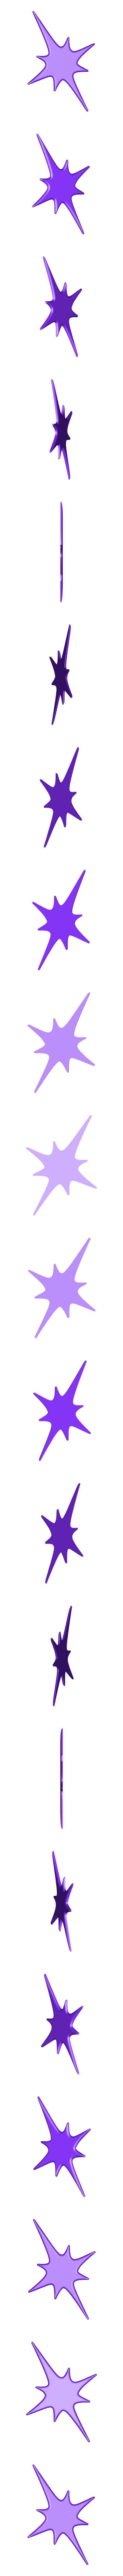 Space Decals_ Star I.stl Download free STL file Space Decals • 3D printing template, Hom3d